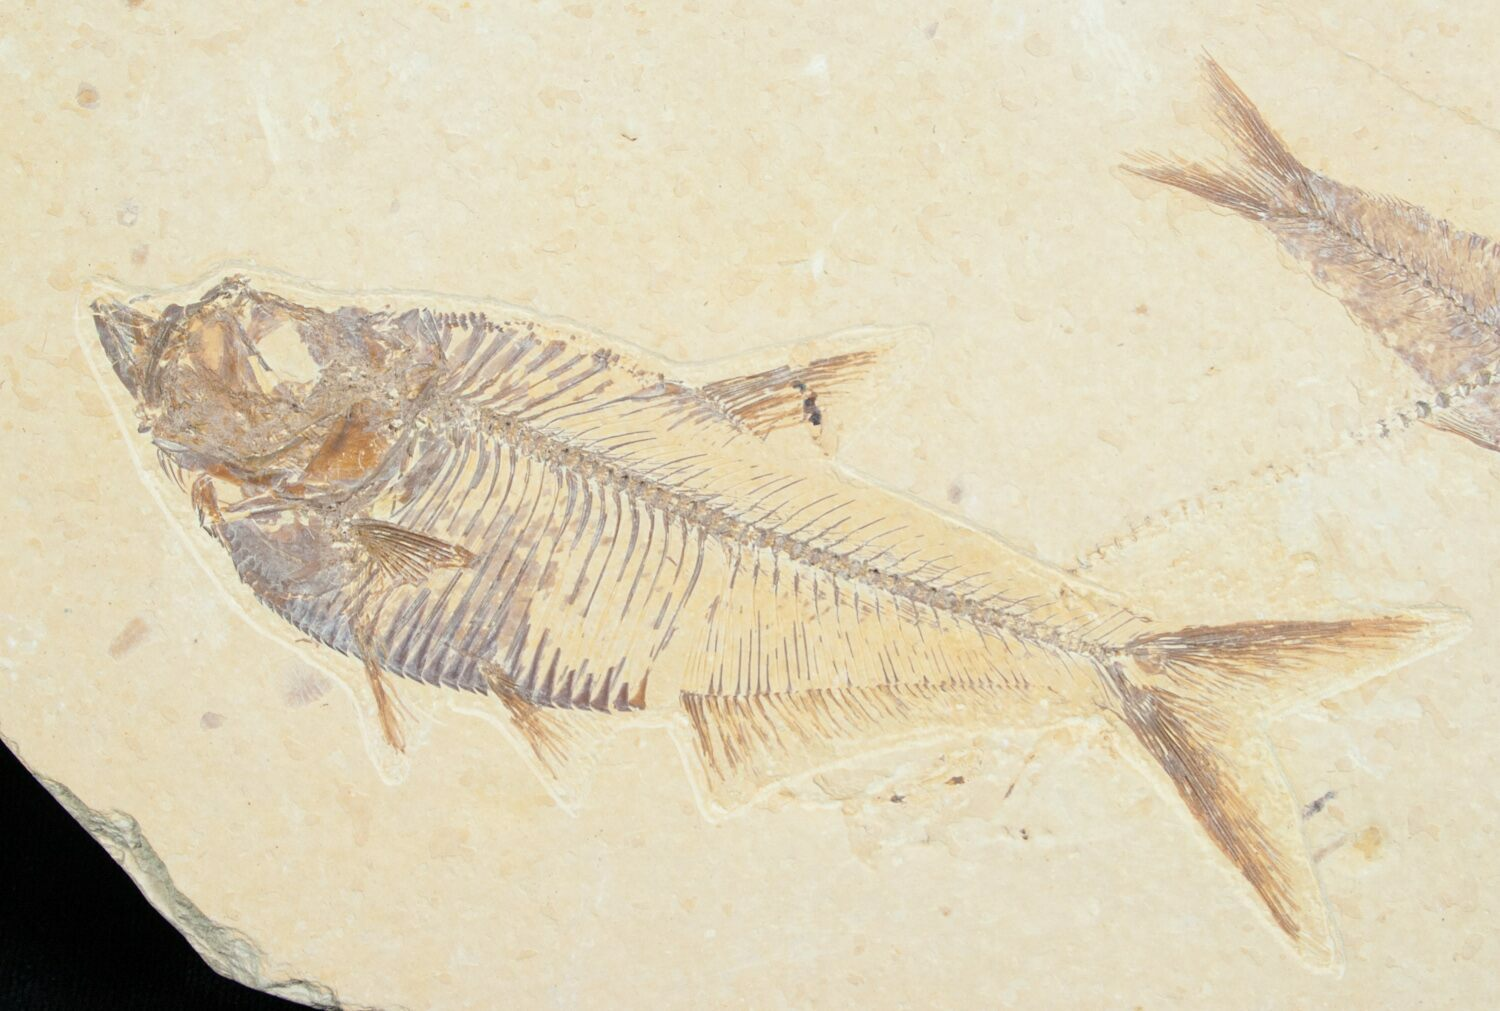 Diplomystus knightia fossil fish plate for sale 5479 for Fish fossils for sale